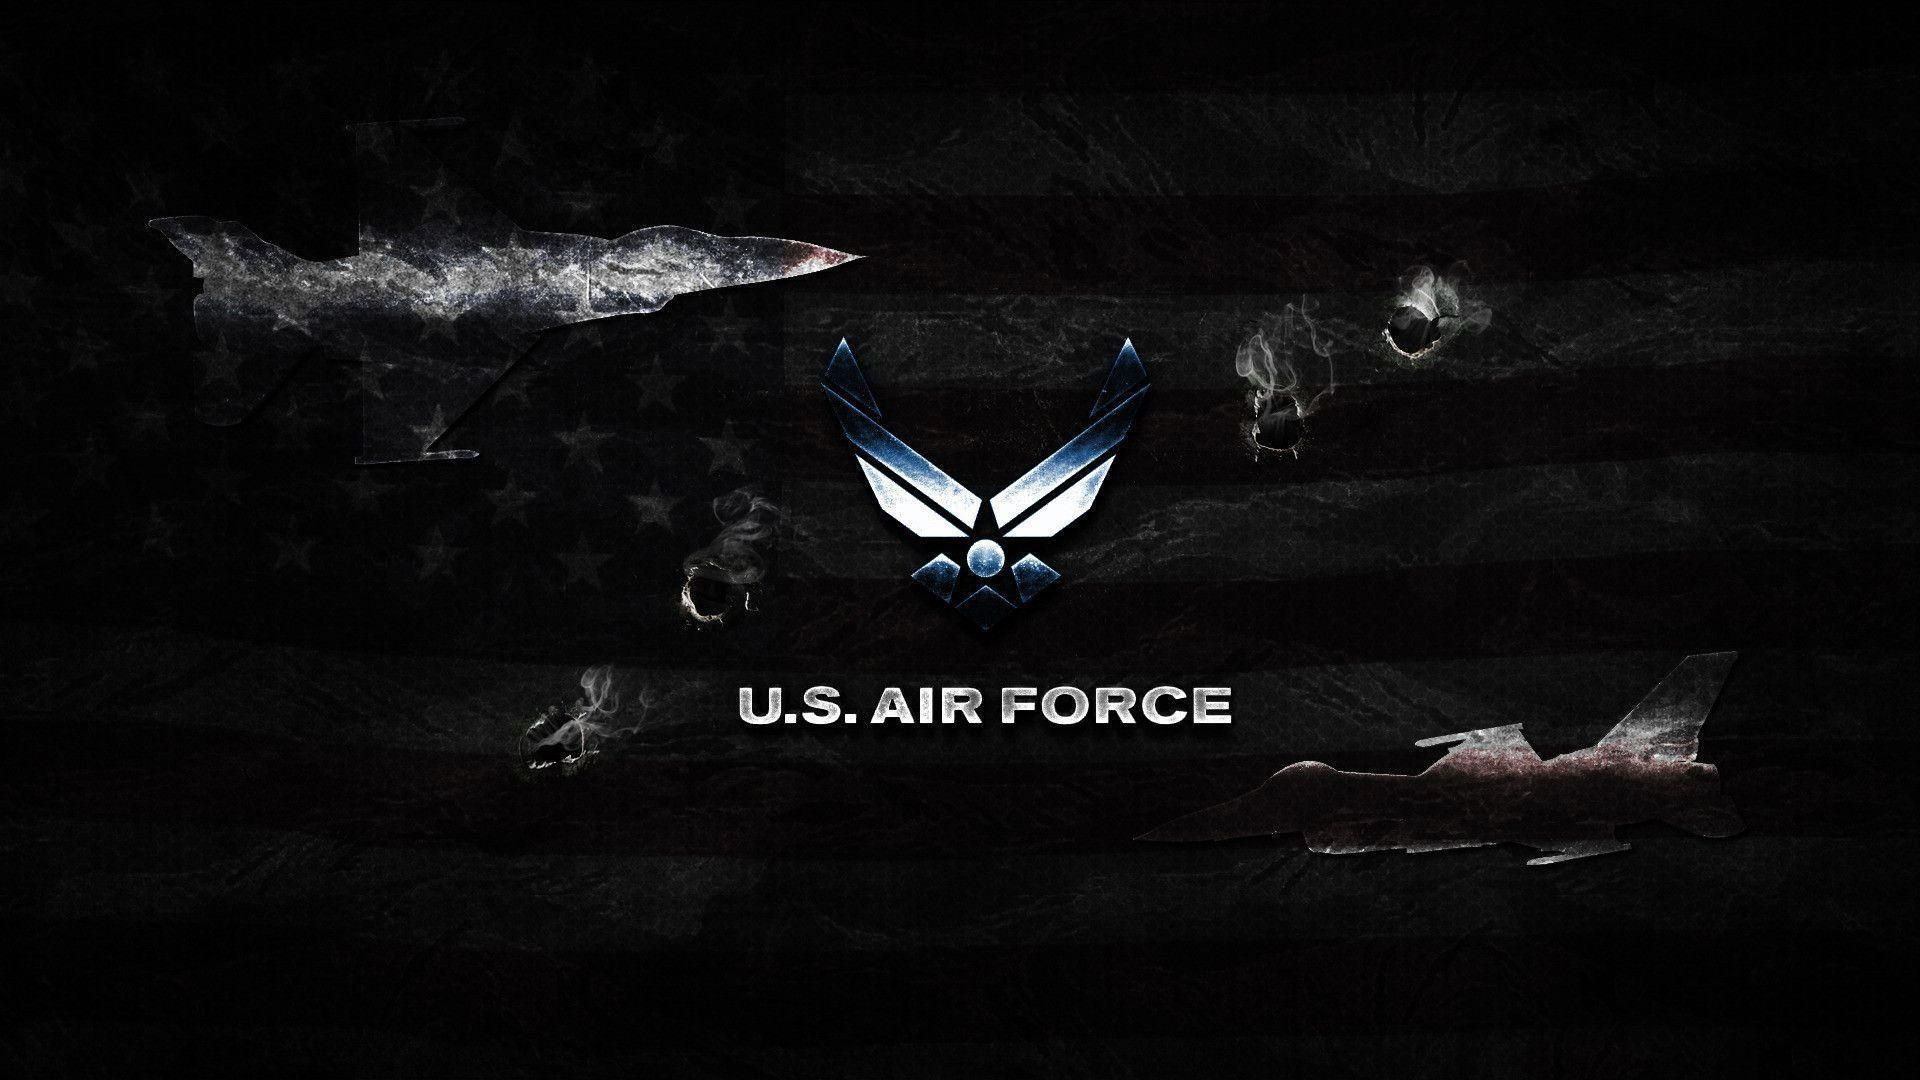 Inspiring Picture design by Air Force